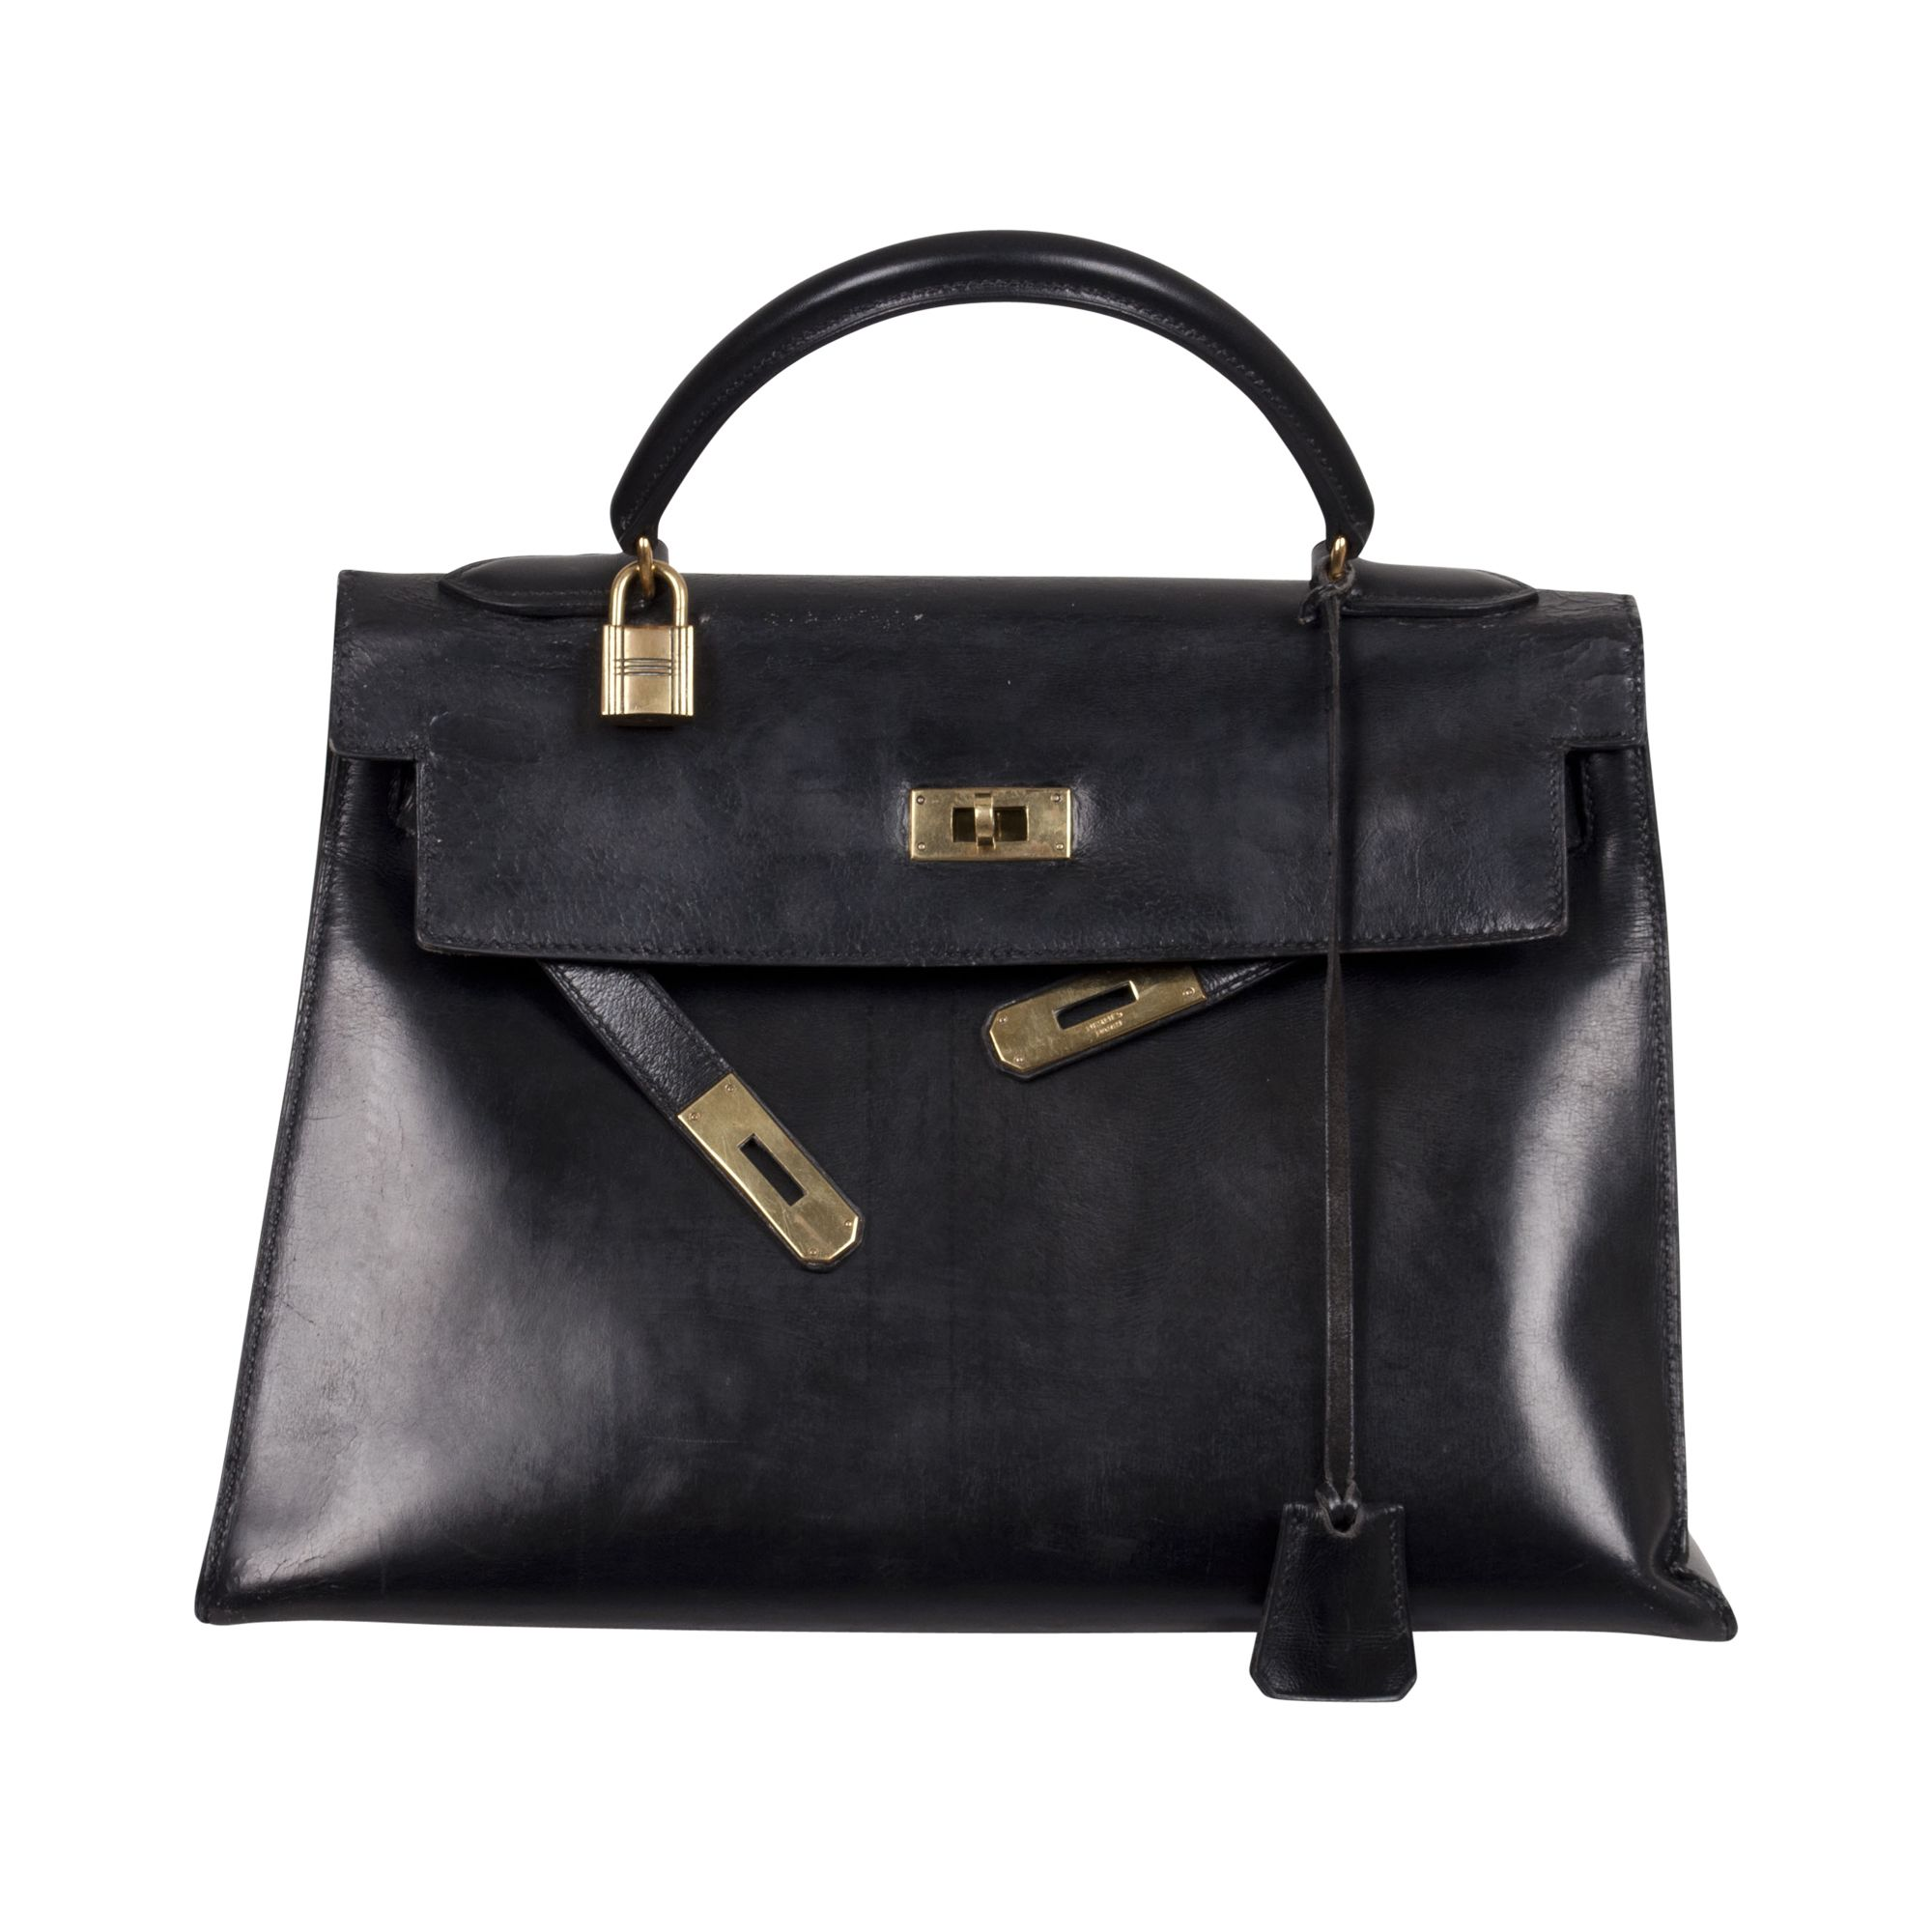 e04f764b47 Hermes Kelly 32 Bag Vintage | The Chic Selection